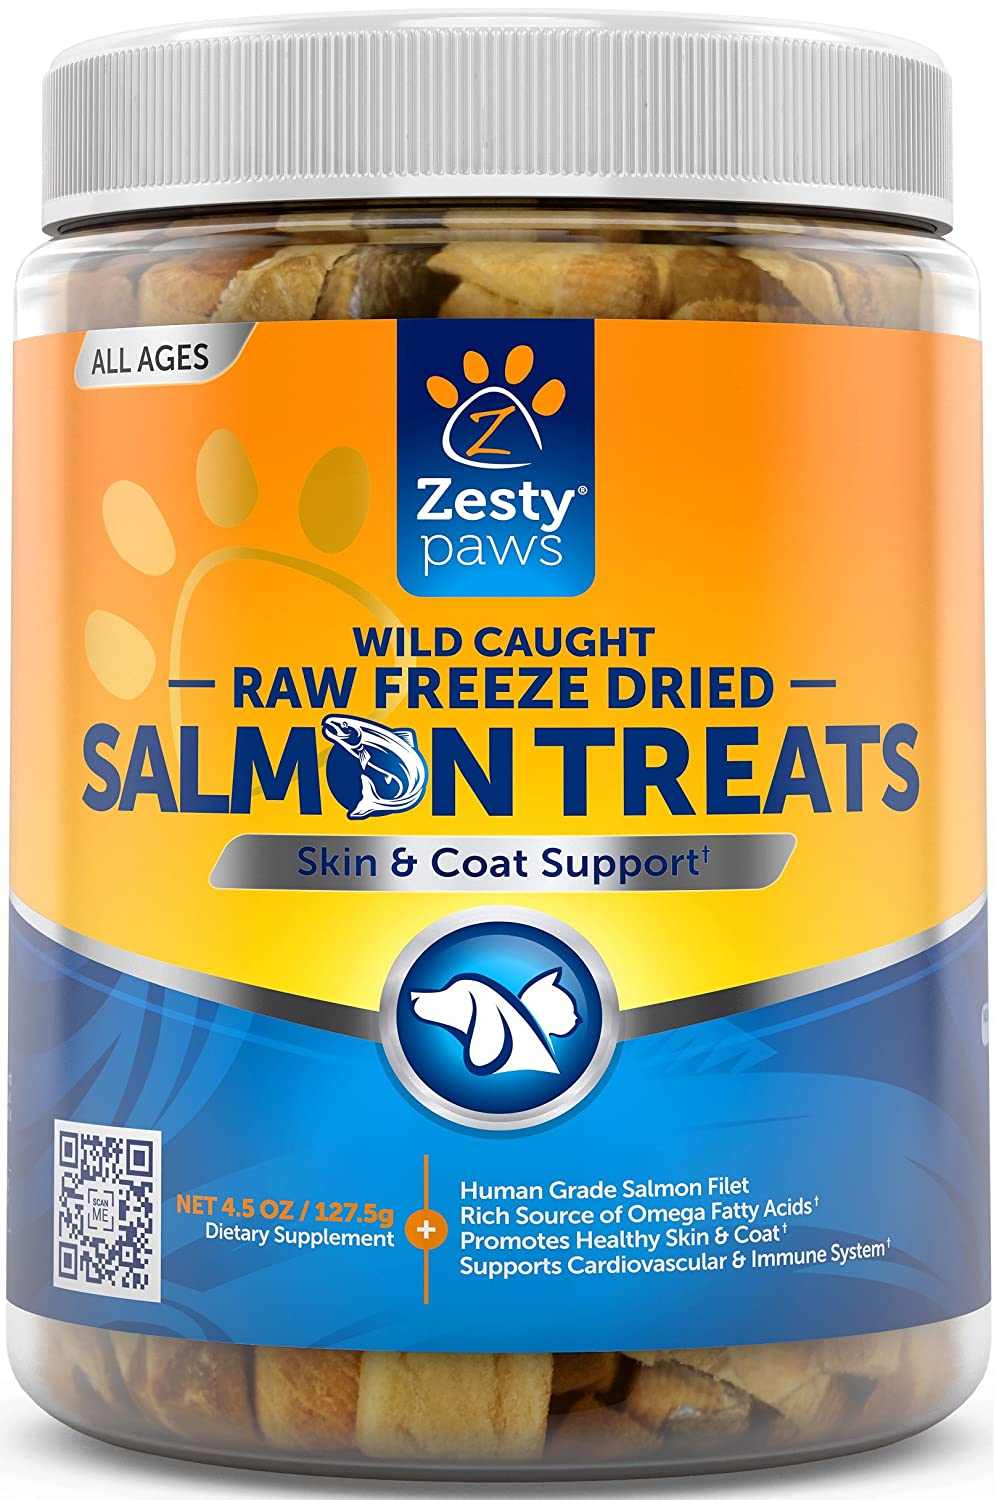 Freeze Dried Salmon Filet Treats for Dogs & Cats - With Pure Raw & Wild Caught Pacific Sockeye Salmon Fish - Omega 3 EPA + DHA Fatty